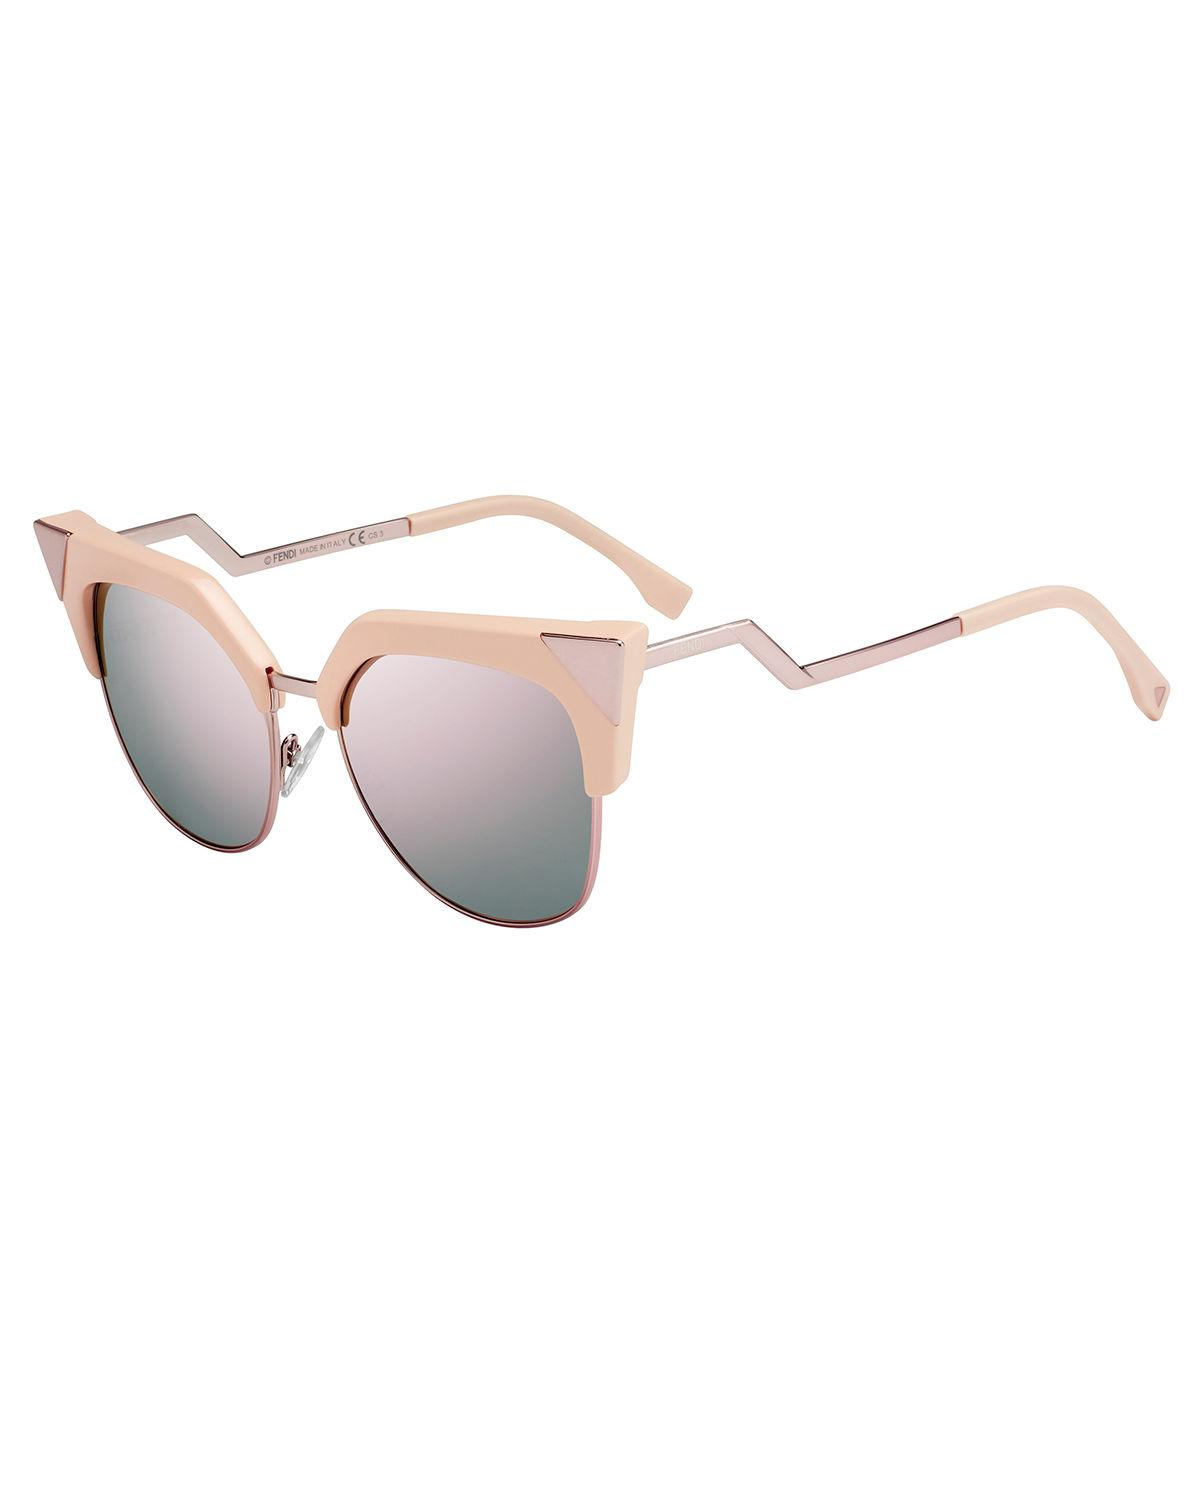 3752dc97e117 Fendi Women s Iridia Mirrored Cat Eye Sunglasses